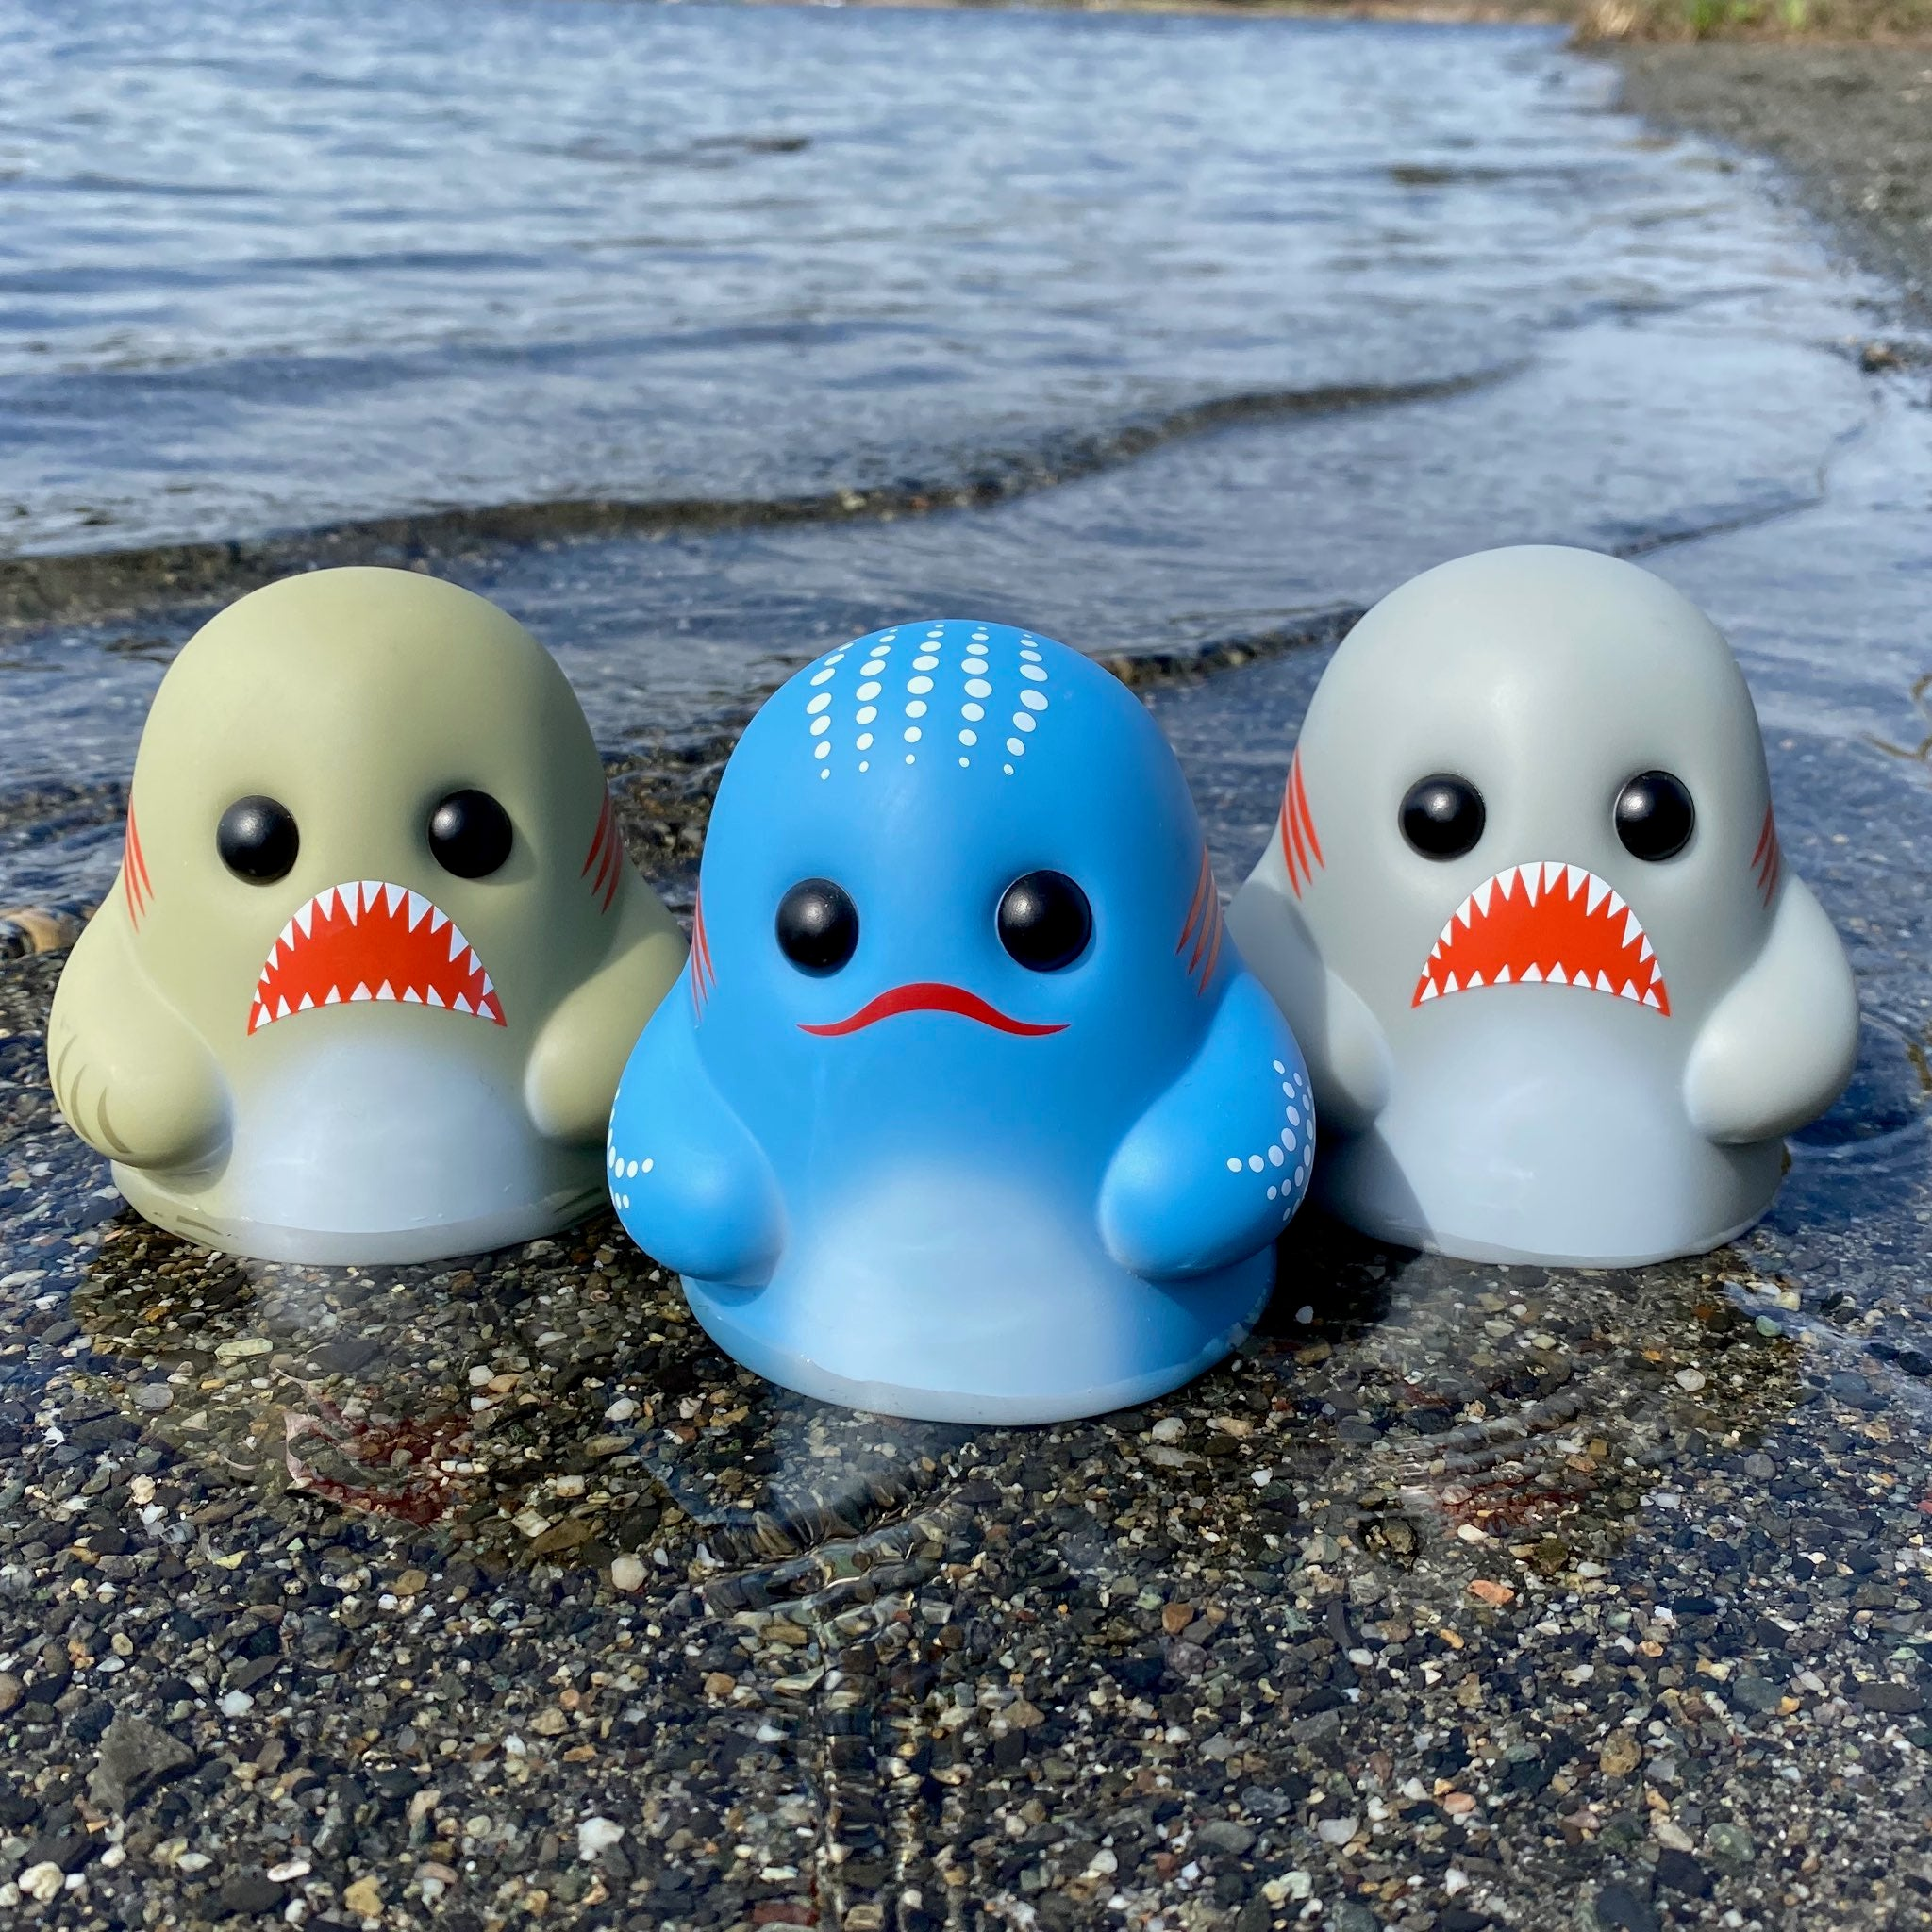 Bimtoy Tiny Ghost 3 Inch Vinyl Figures Sharks [3 Pack] - Fugitive Toys